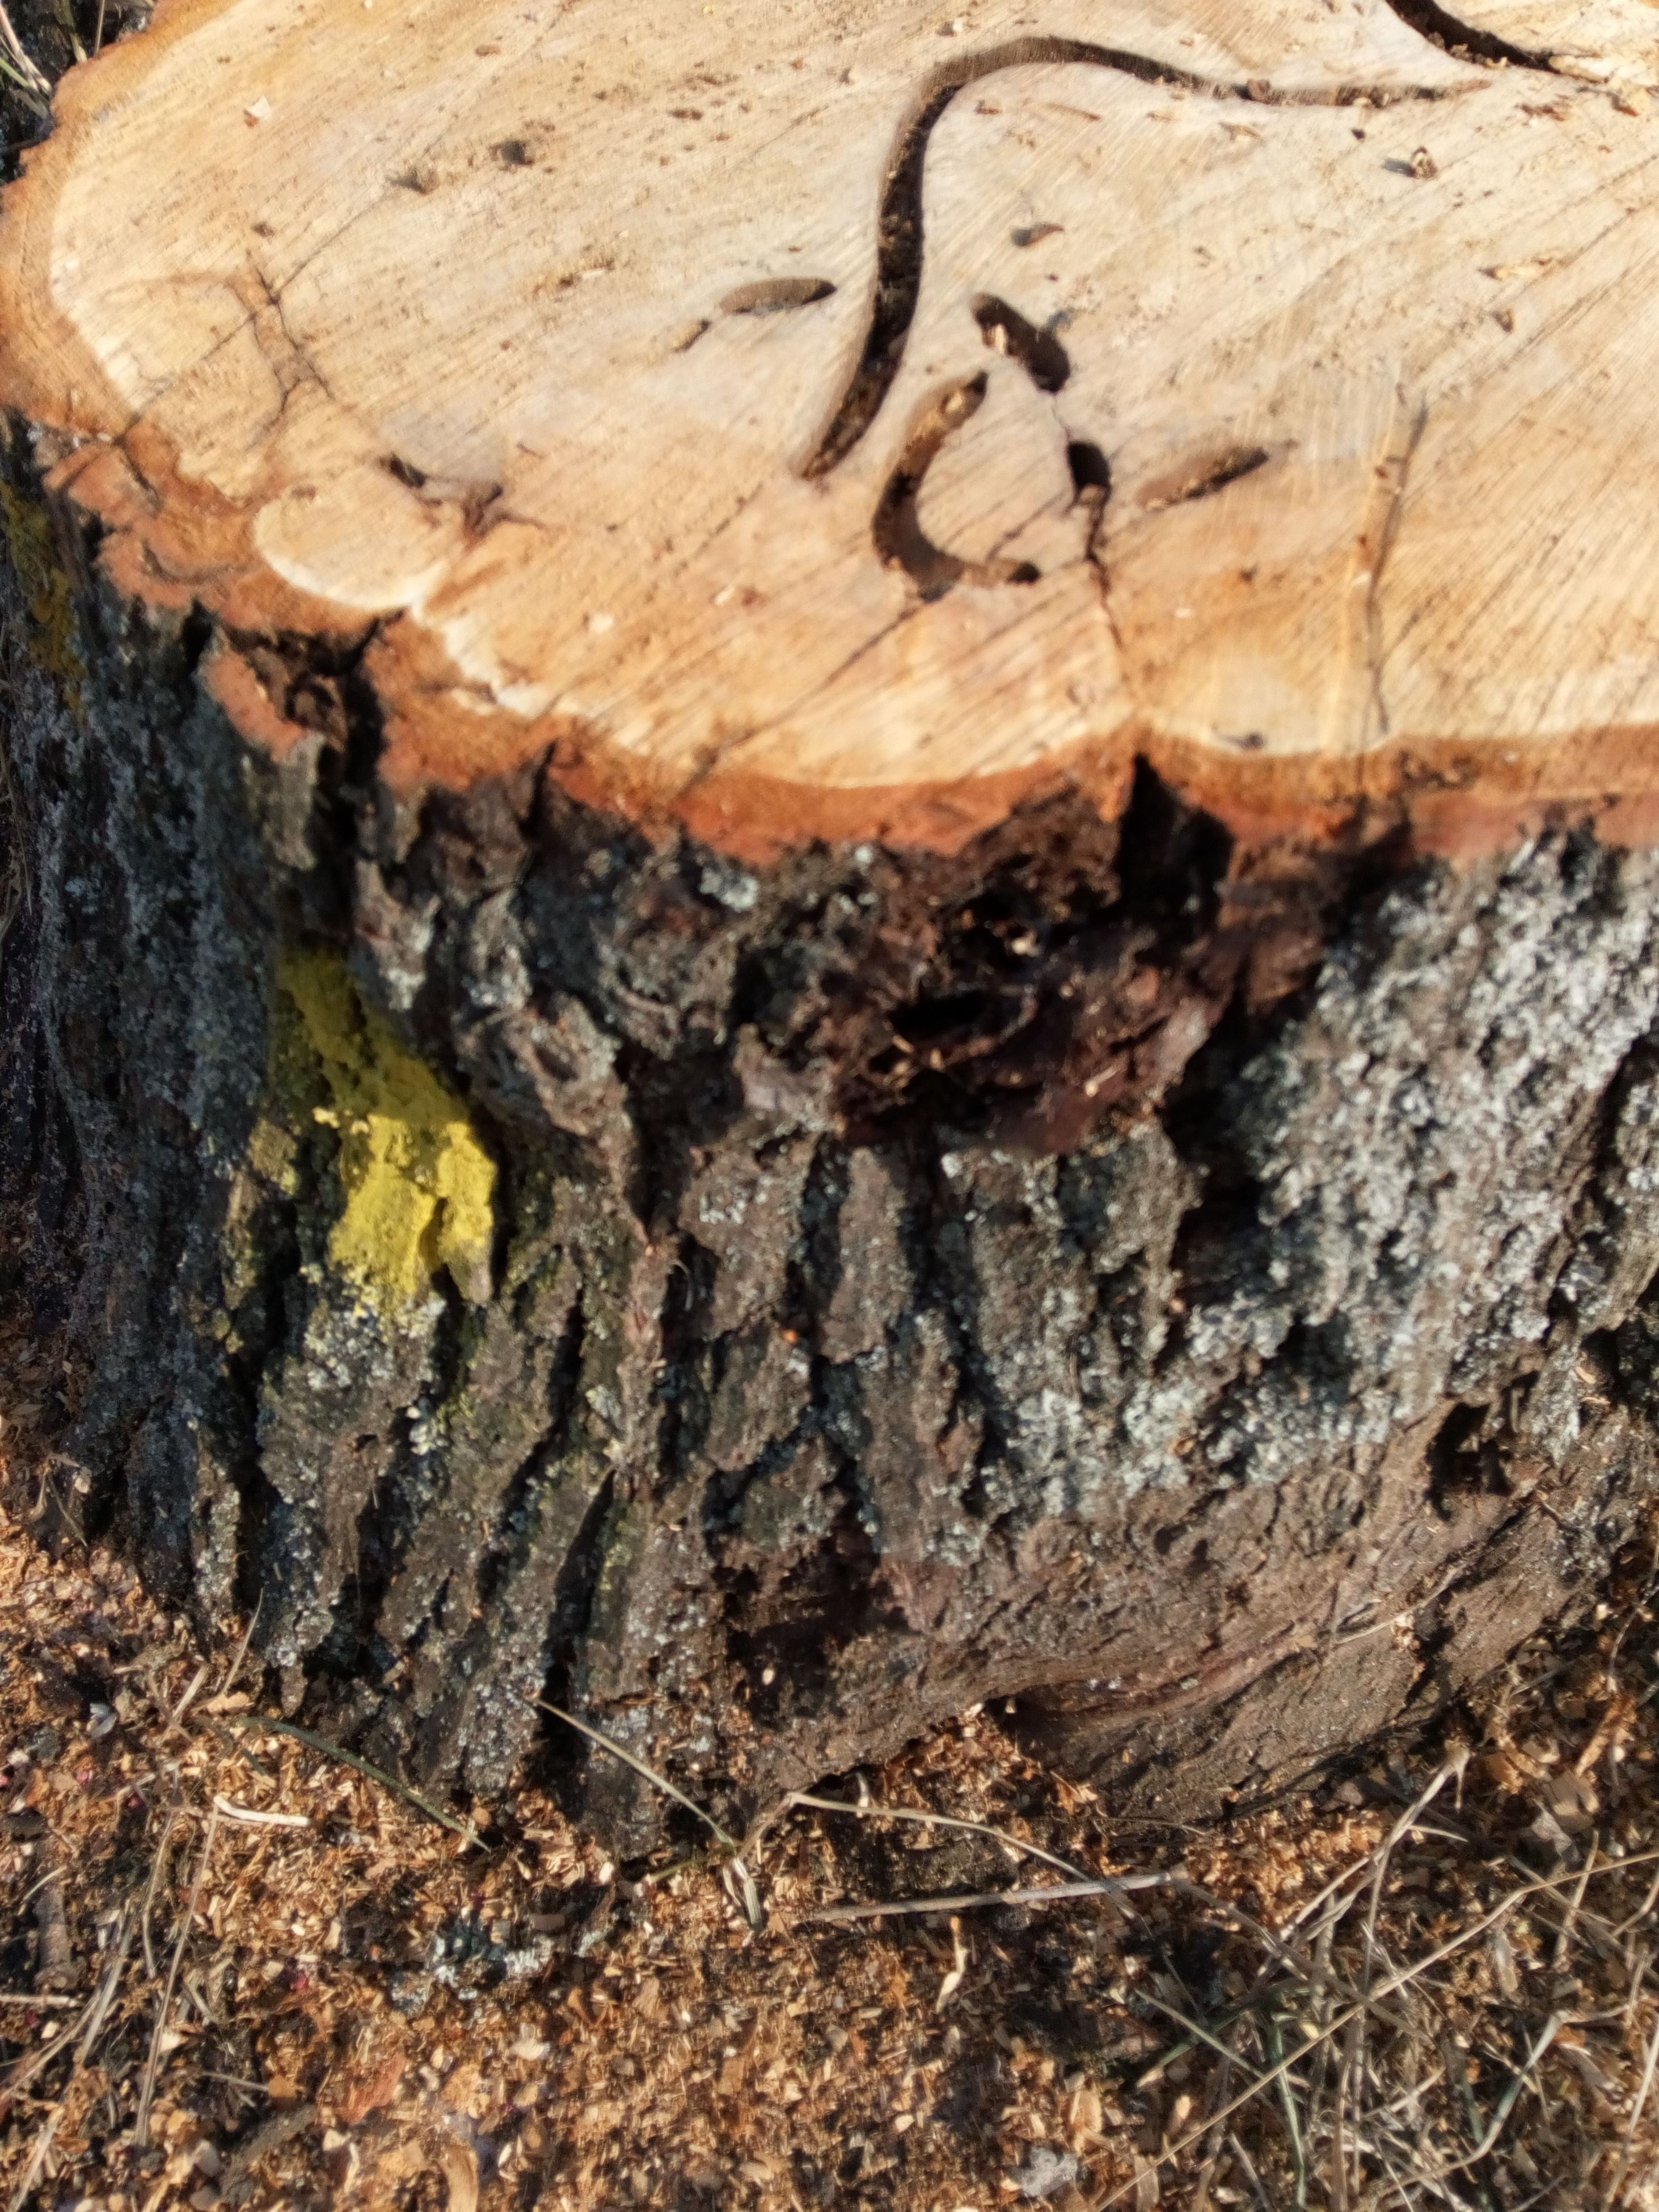 textured, no people, close-up, outdoors, nature, day, tree trunk, tree, backgrounds